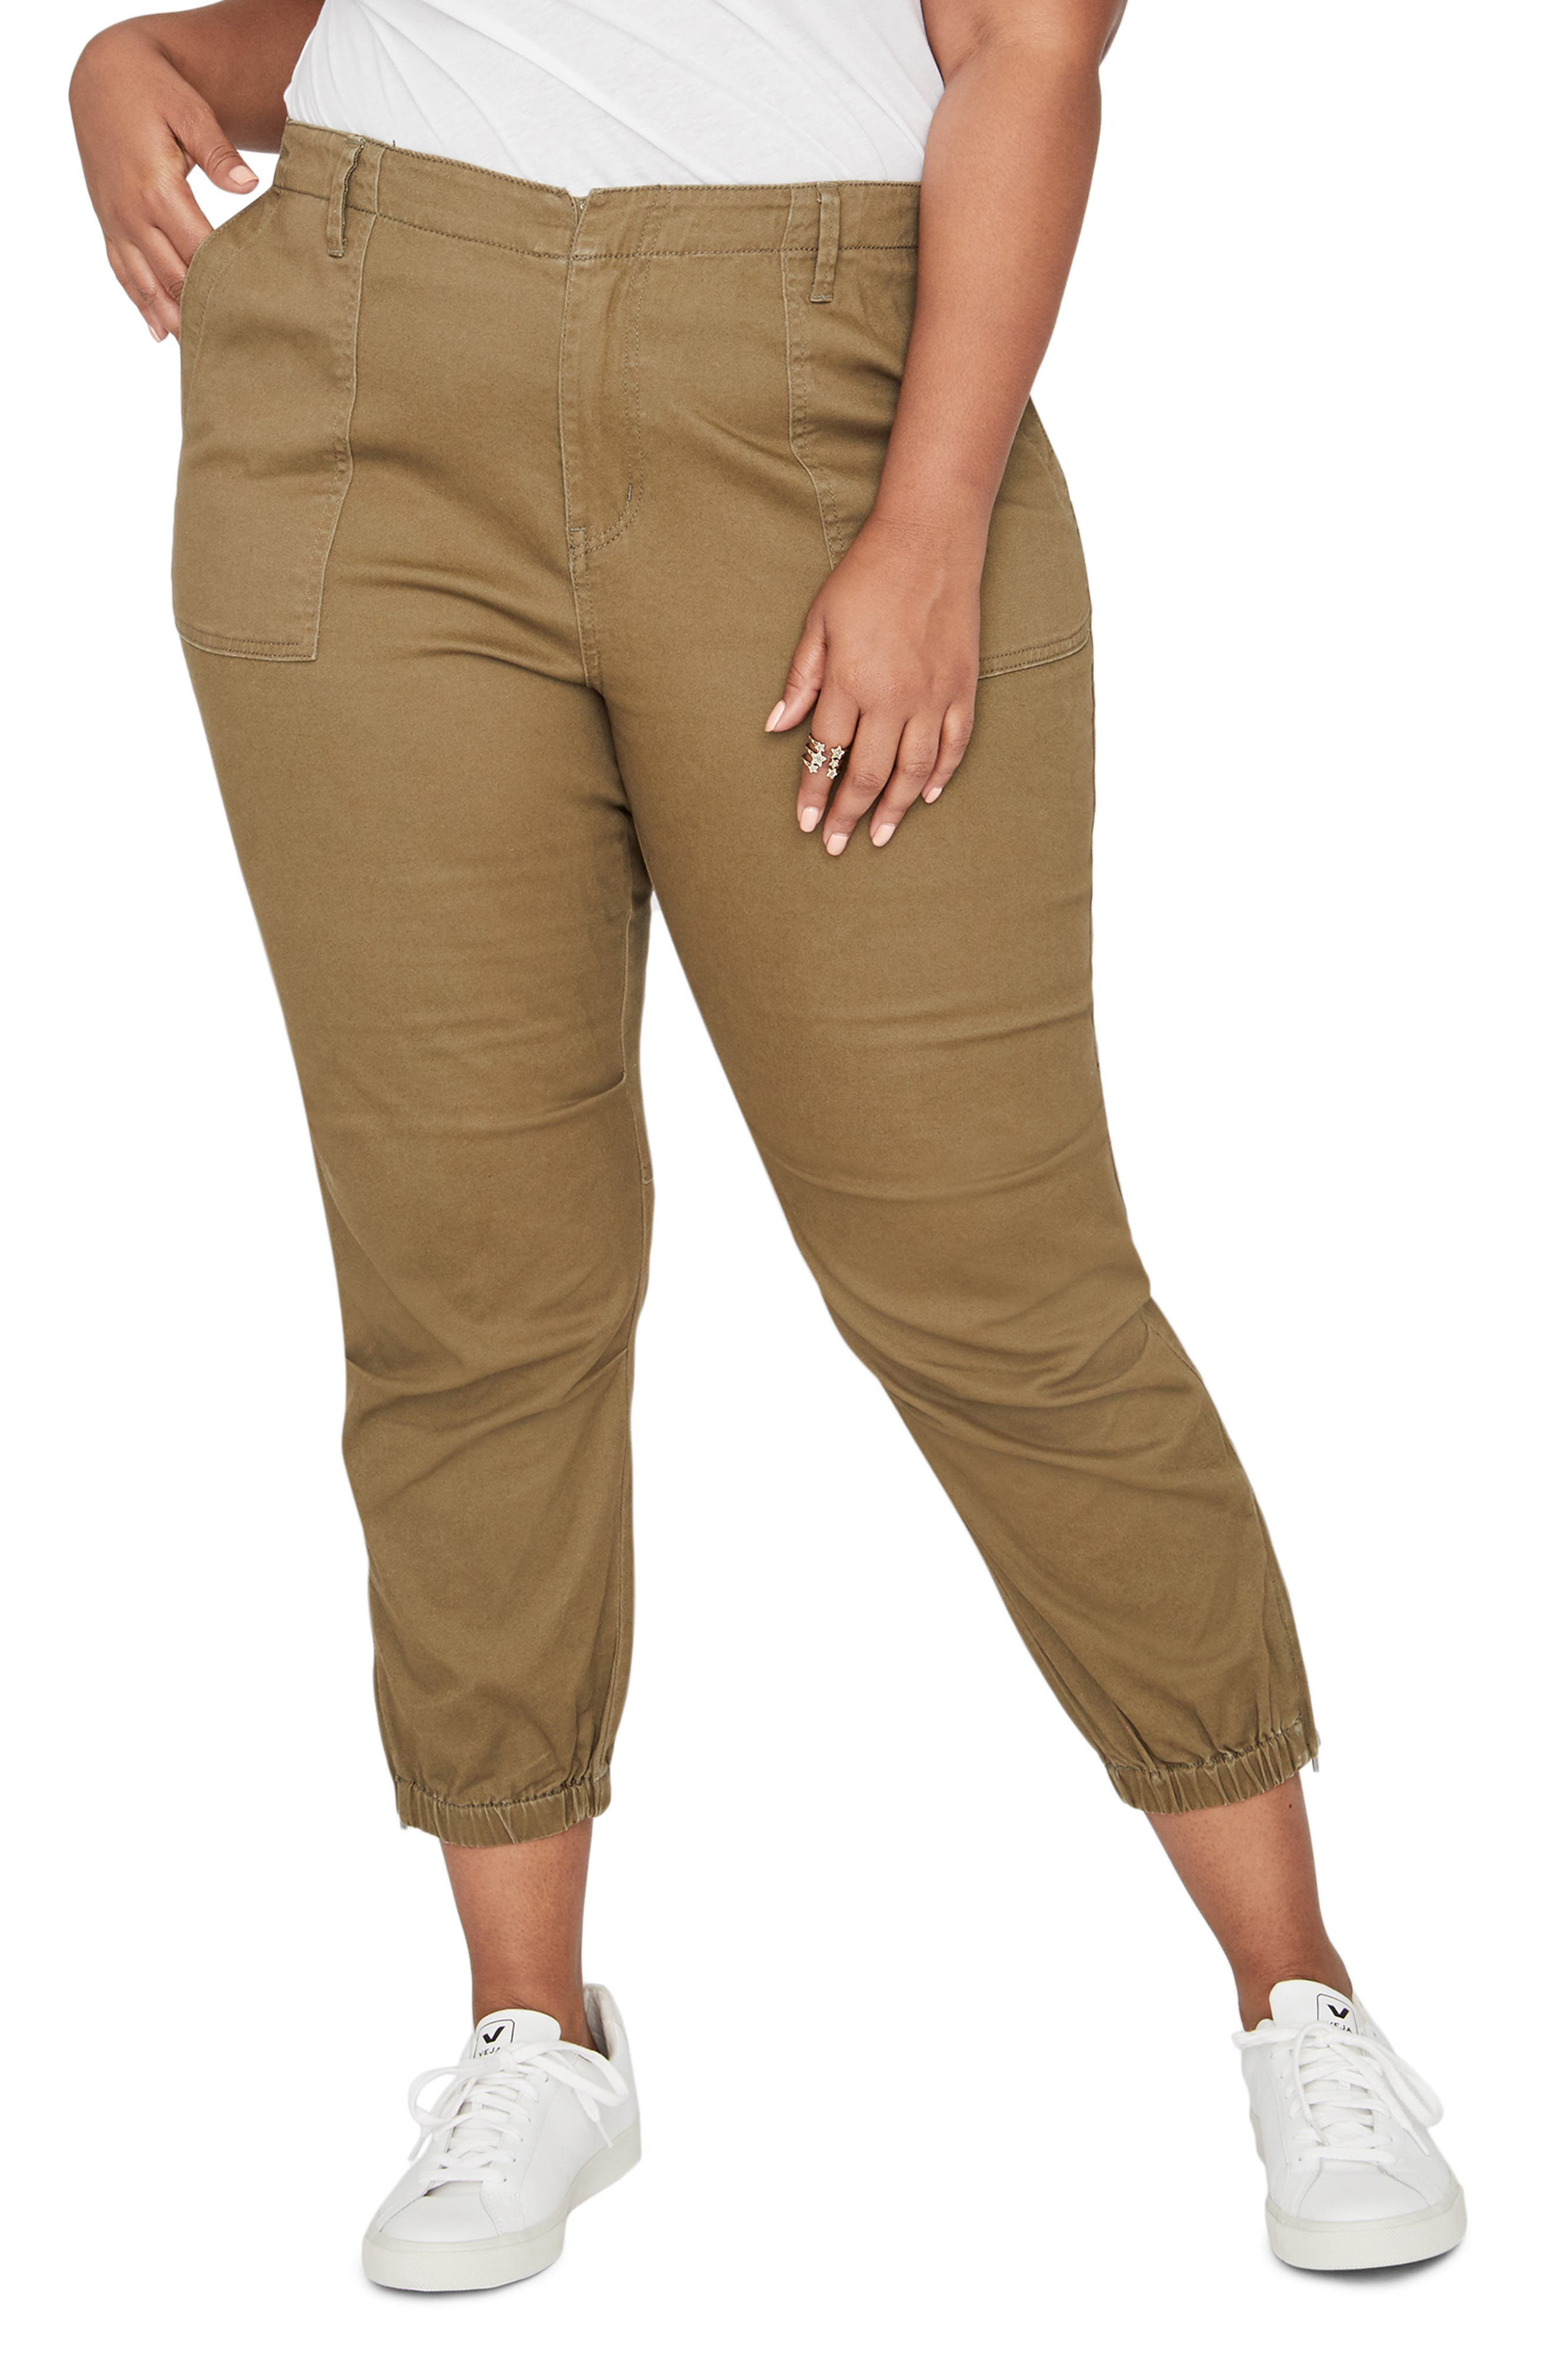 Army High Rise Crop Military Pants,                         Main,                         color, 312